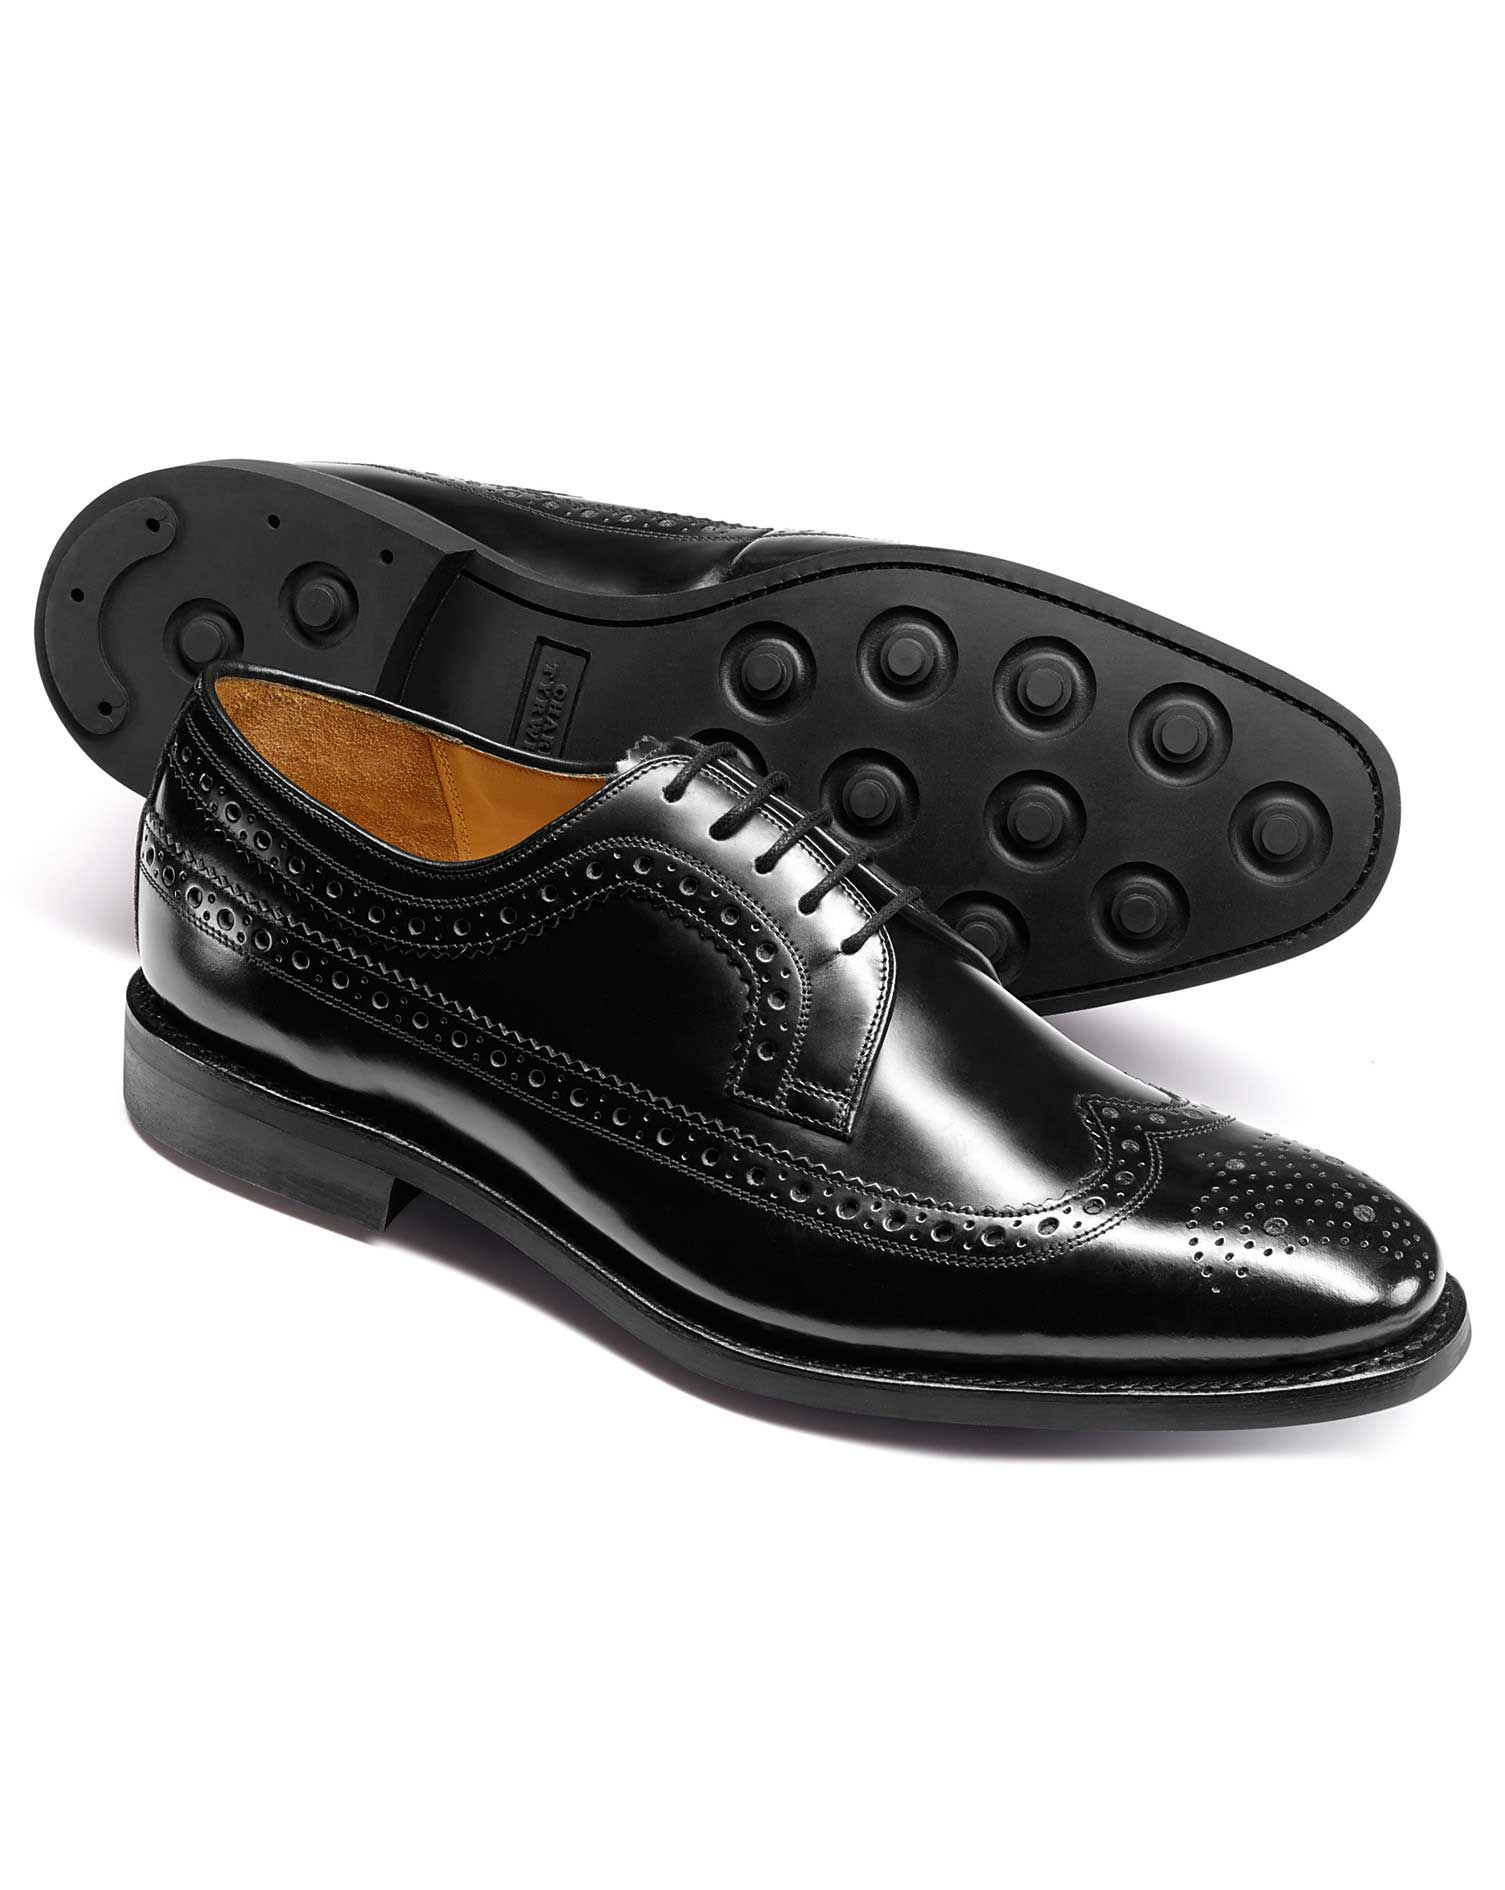 Black Goodyear Welted Derby Wing Tip Brogue Shoes Size 12 W by Charles Tyrwhitt